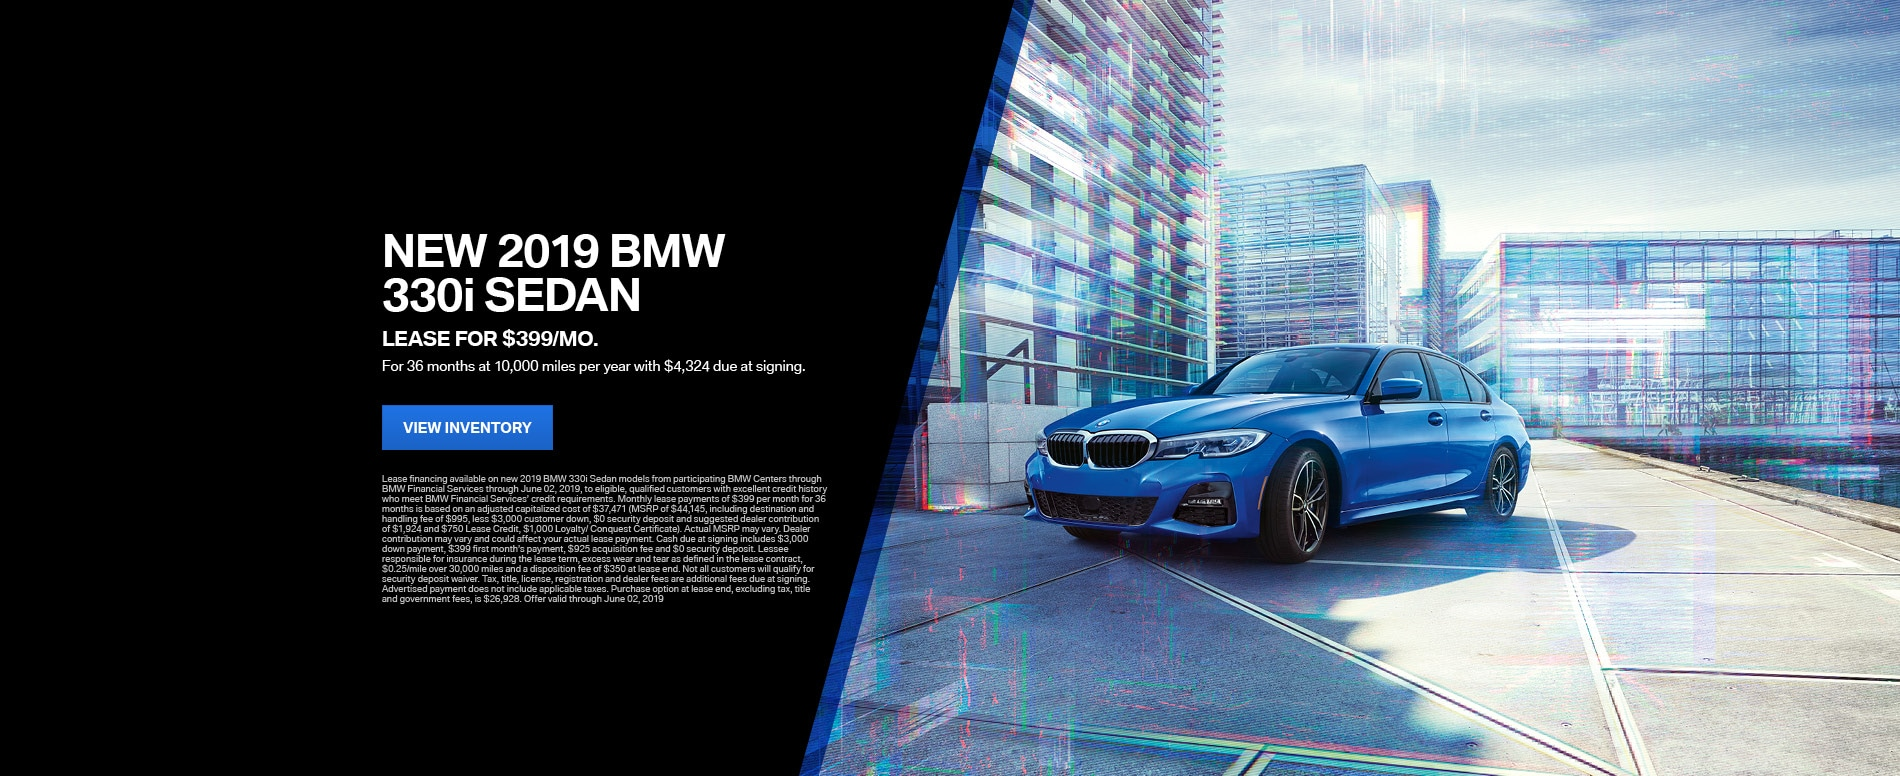 Stevens Creek Bmw Bmw Auto Dealership In Santa Clara Ca